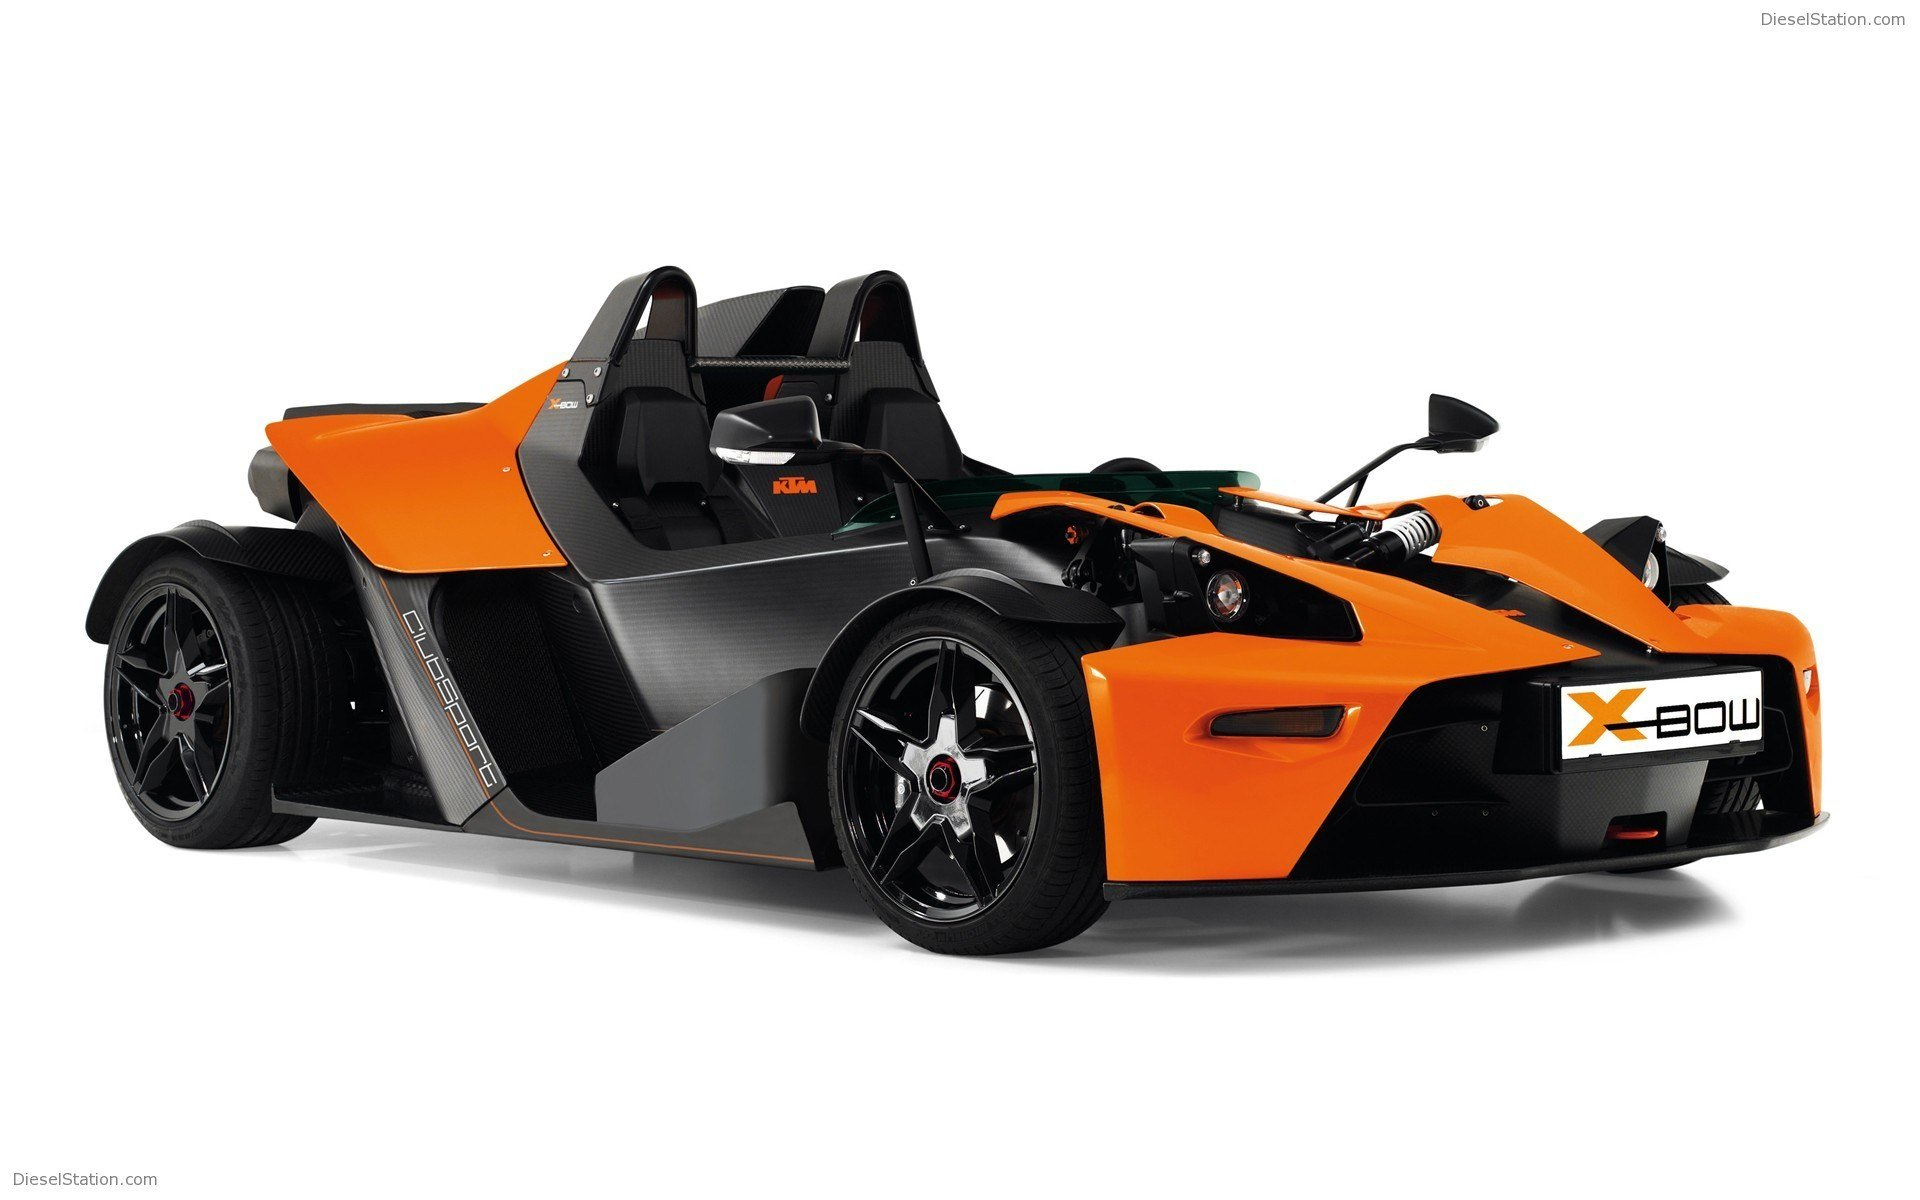 Latest Ktm X Bow Clubsport Widescreen Exotic Car Picture 01 Of 8 Free Download